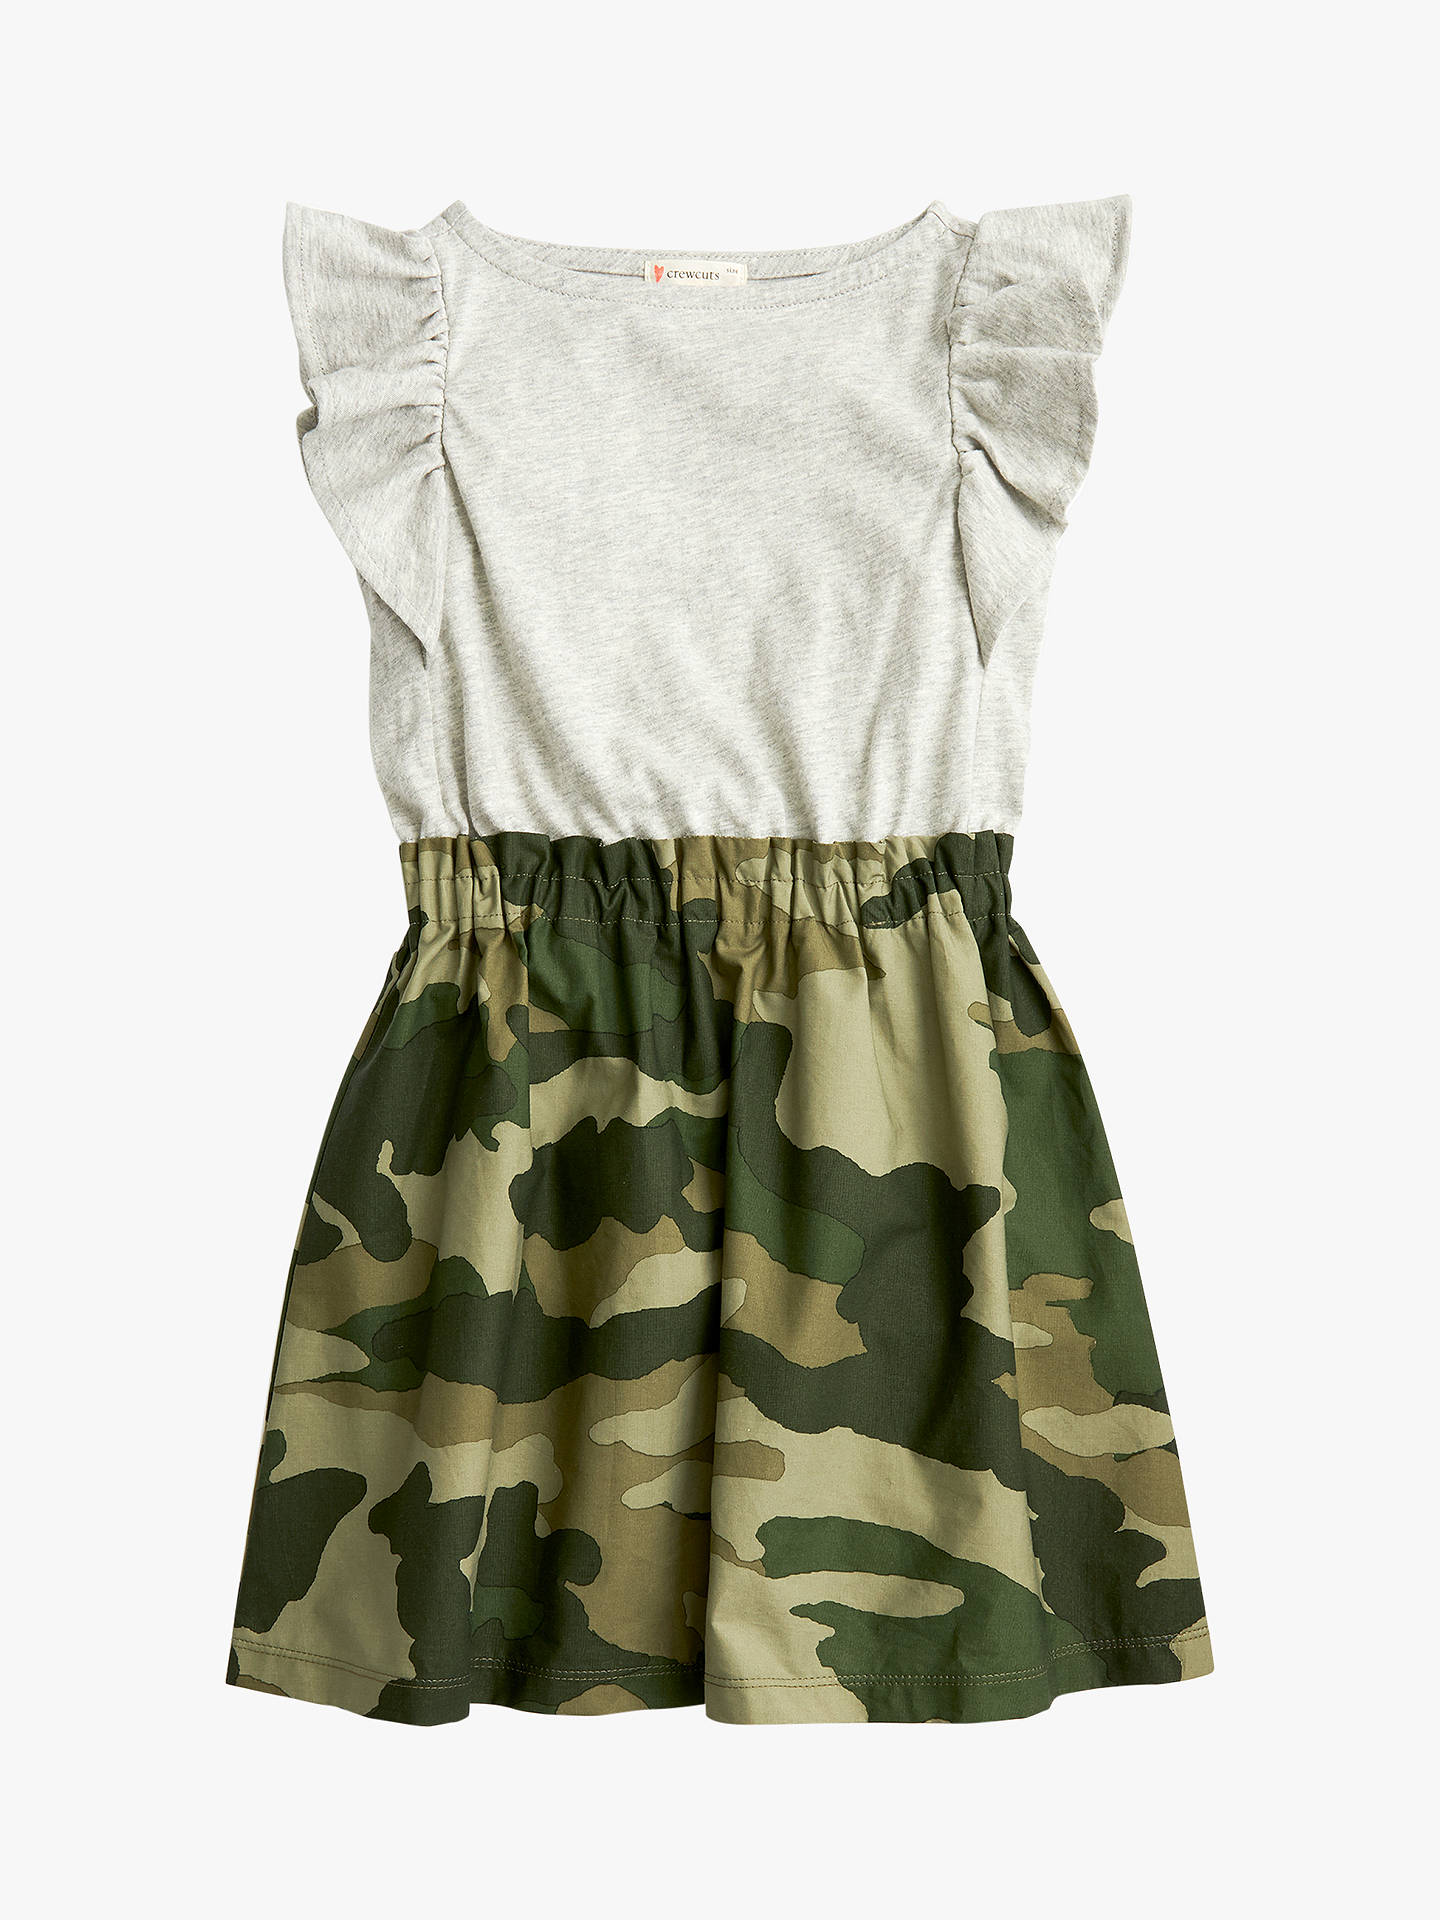 88a6cf8ca39 Buy crewcuts by J.Crew Girls  Mixed Media Camouflage Dress